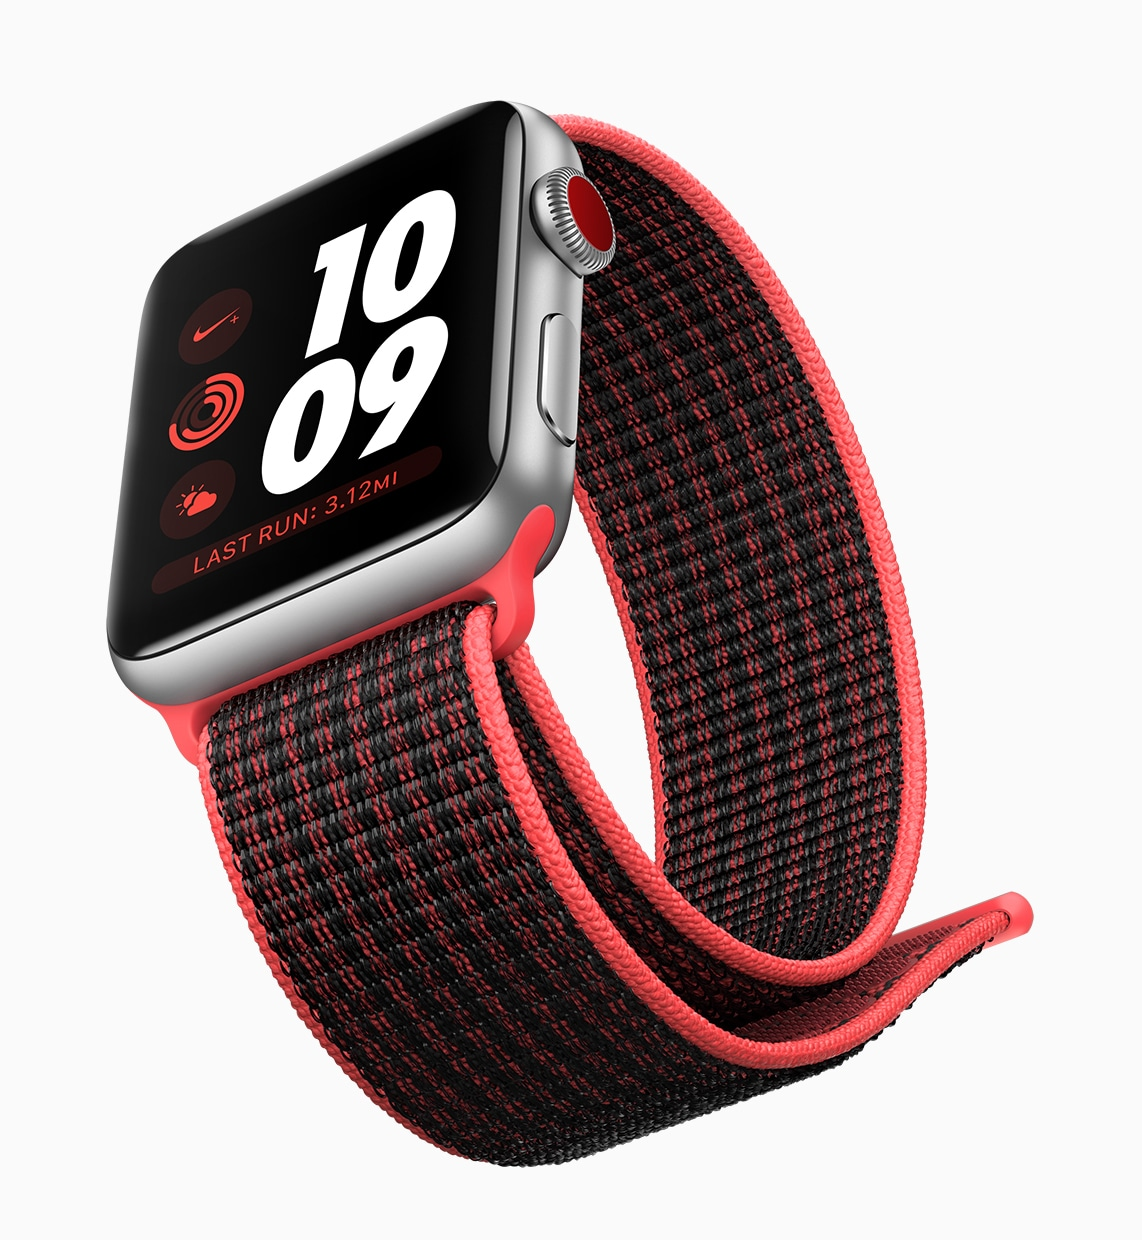 Apple Watch Series 3 com pulseira esportiva vermelha